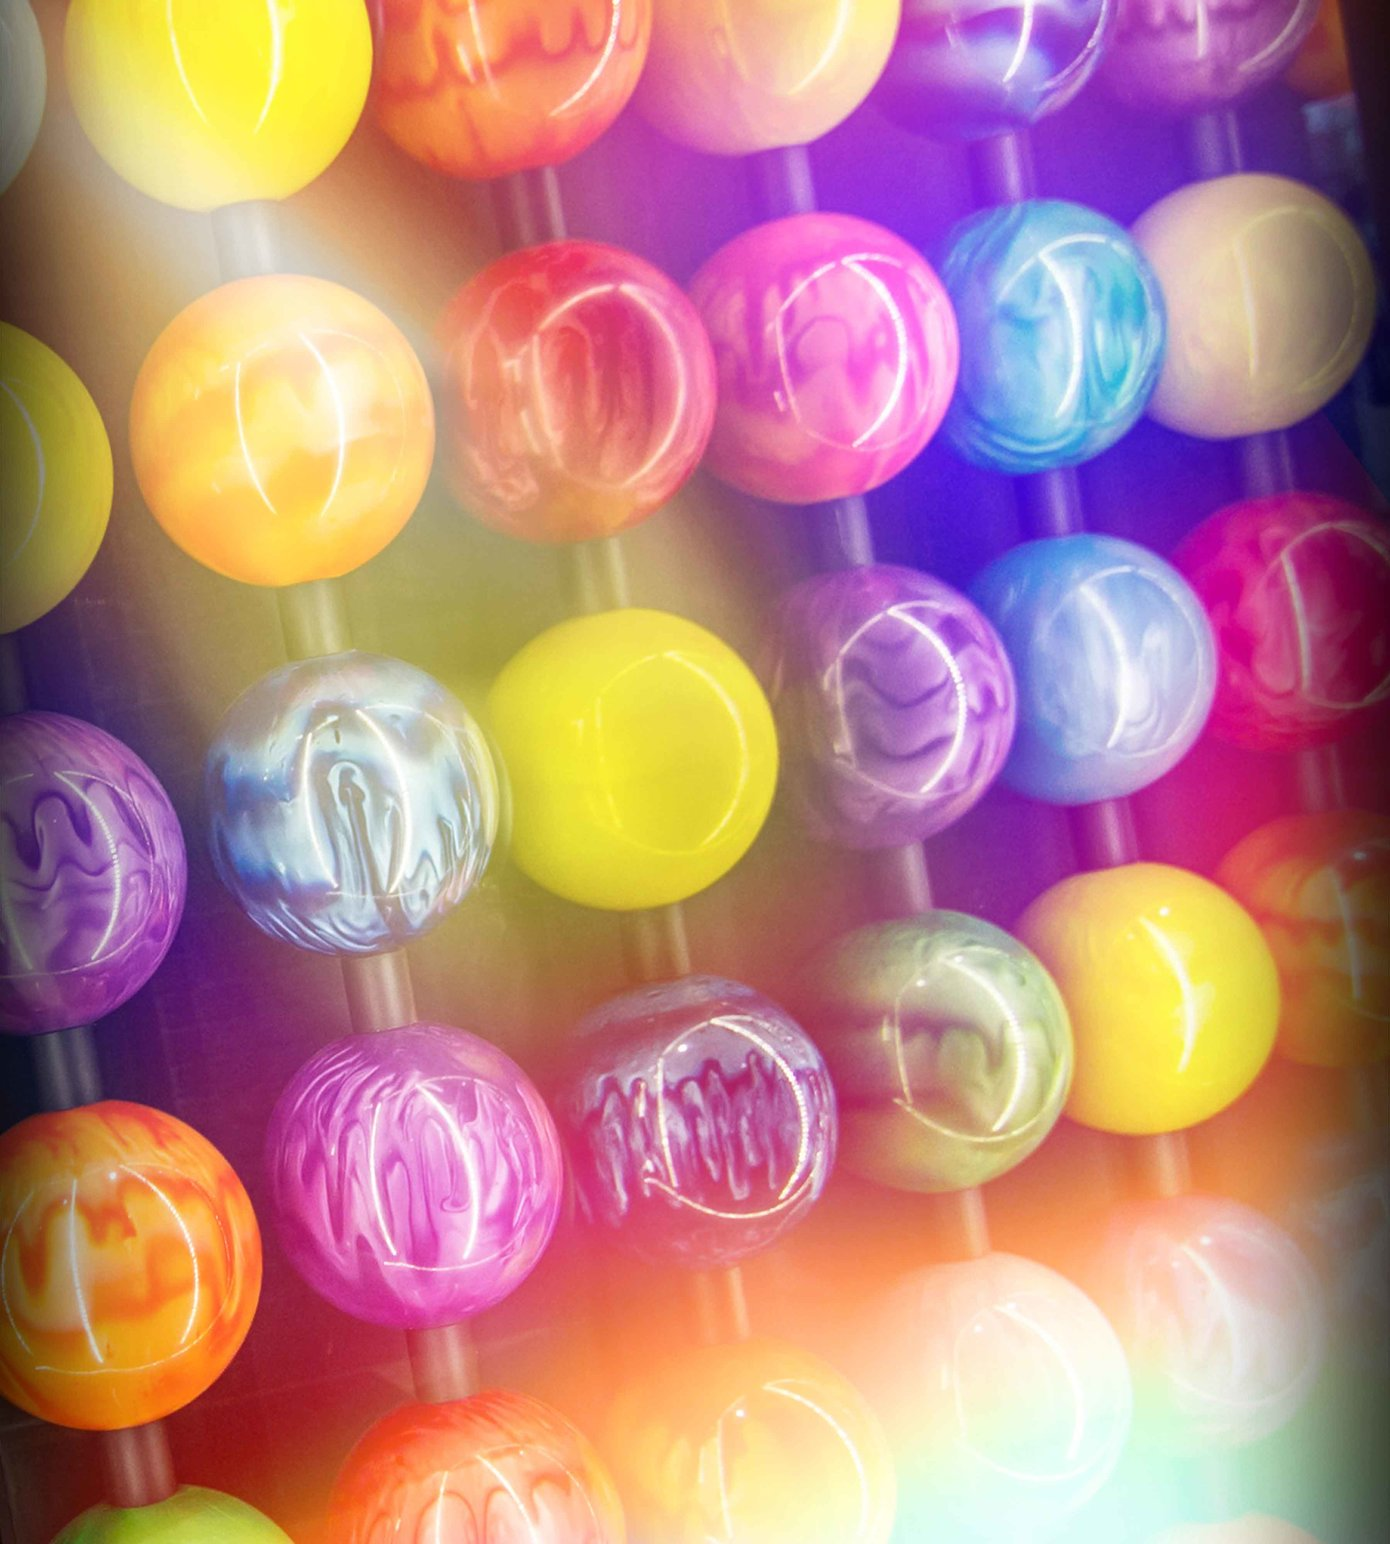 Bowling ball background